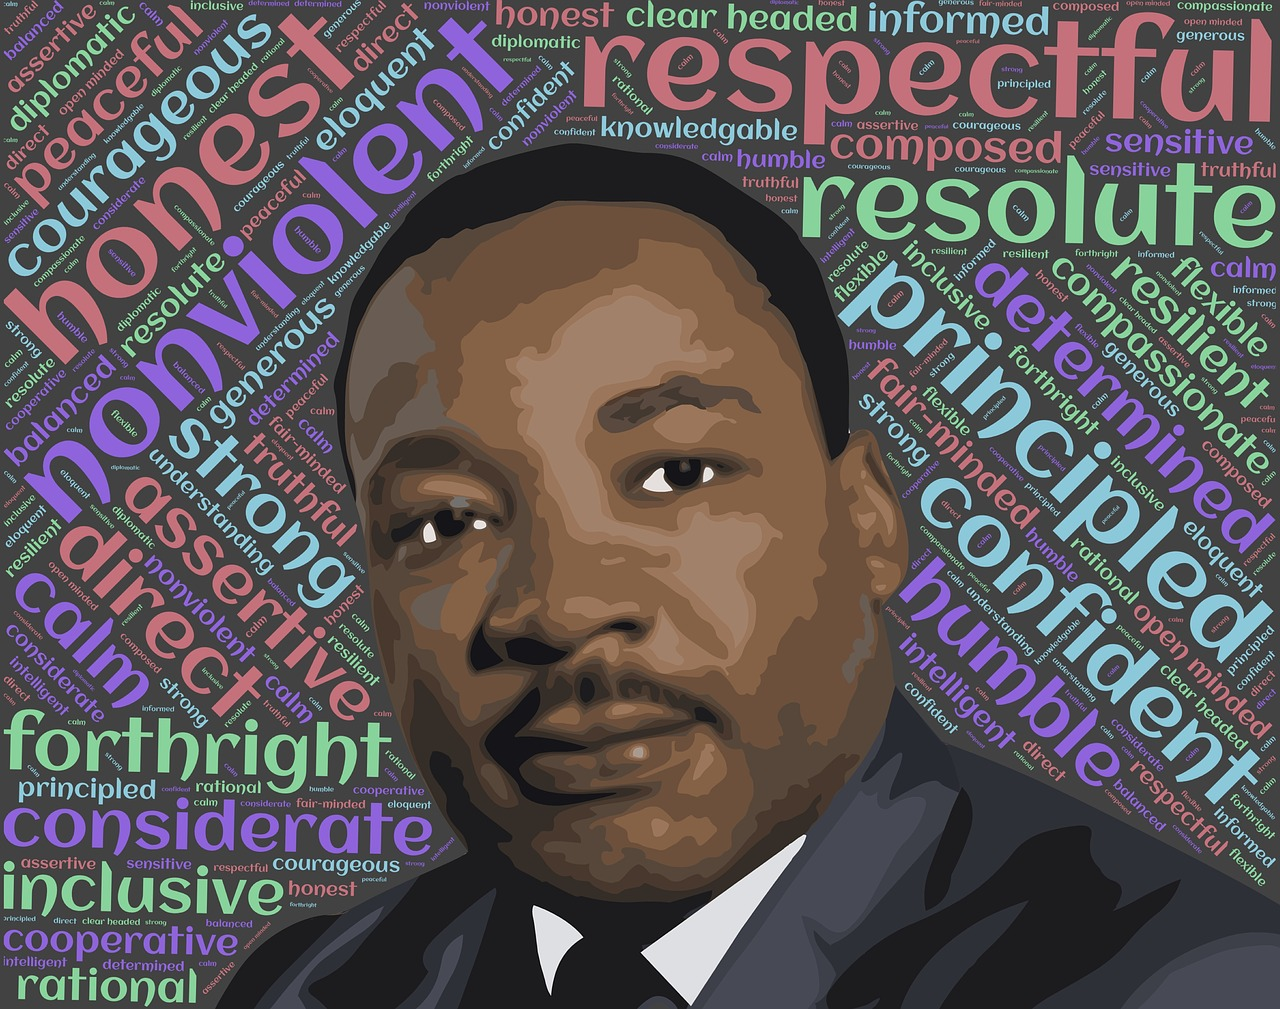 leadership qualities martin luther king free photo